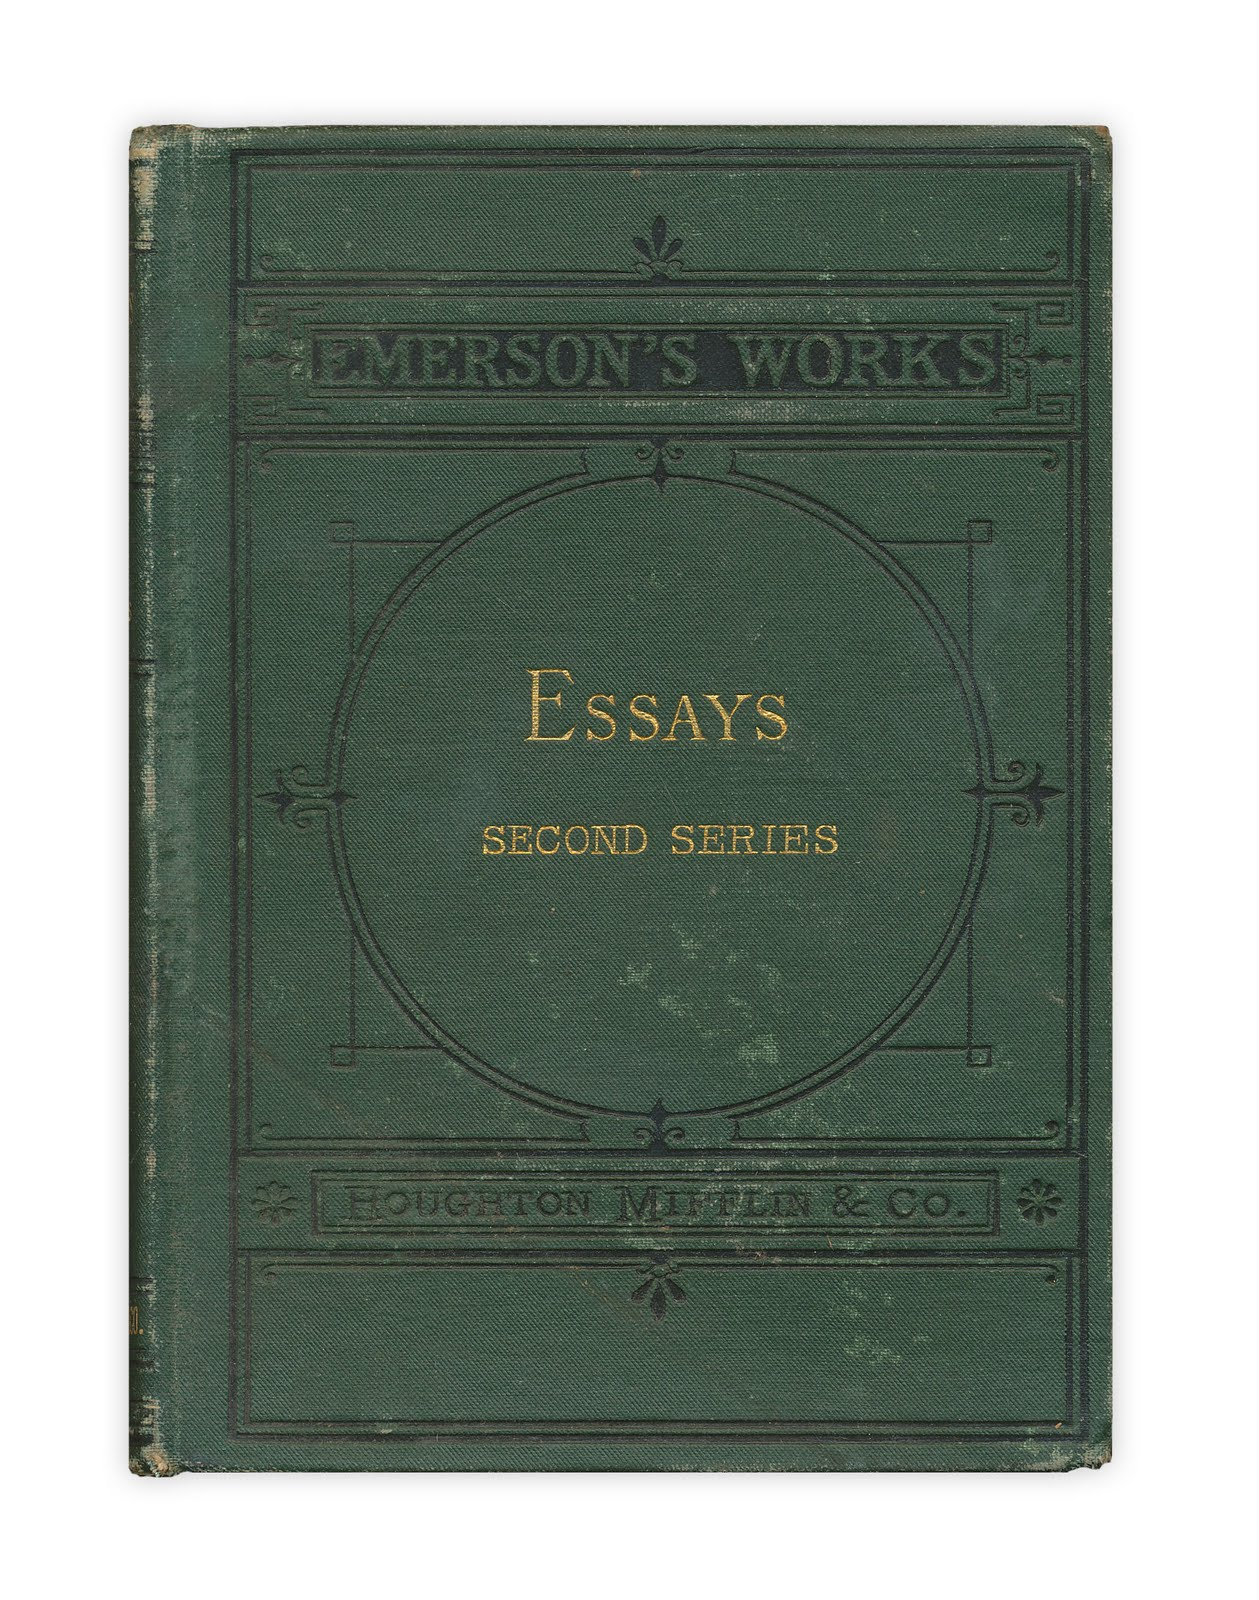 essays emerson In self-reliance, philosopher ralph waldo emerson argues that polite society has an adverse effect on one's personal growth self-sufficiency, he writes, gives one the freedom to discover one'strue self and attain true independence.